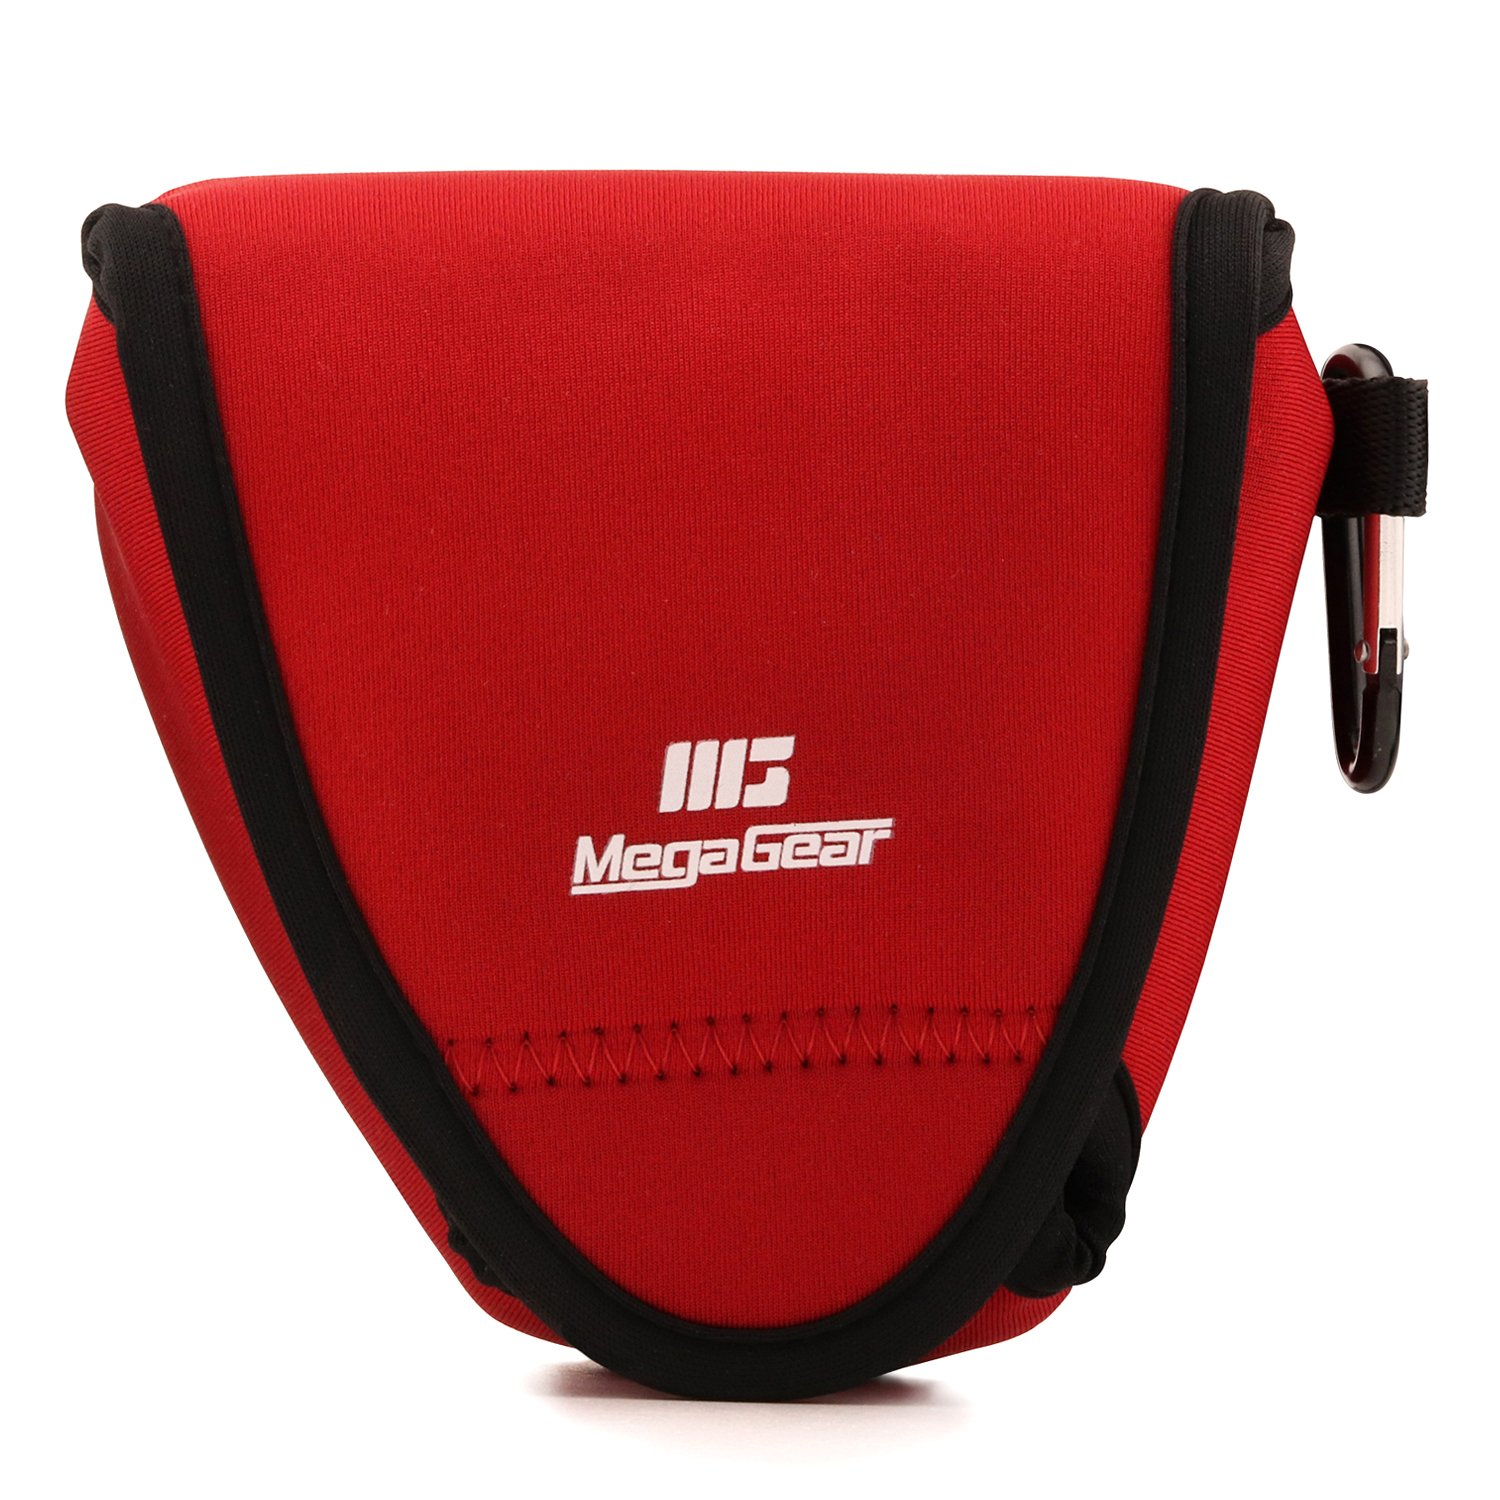 MegaGear Fujifilm X-E3 (23mm & 18-55mm) Ultra Light Neoprene Camera Case, with Carabiner - Red - MG1337